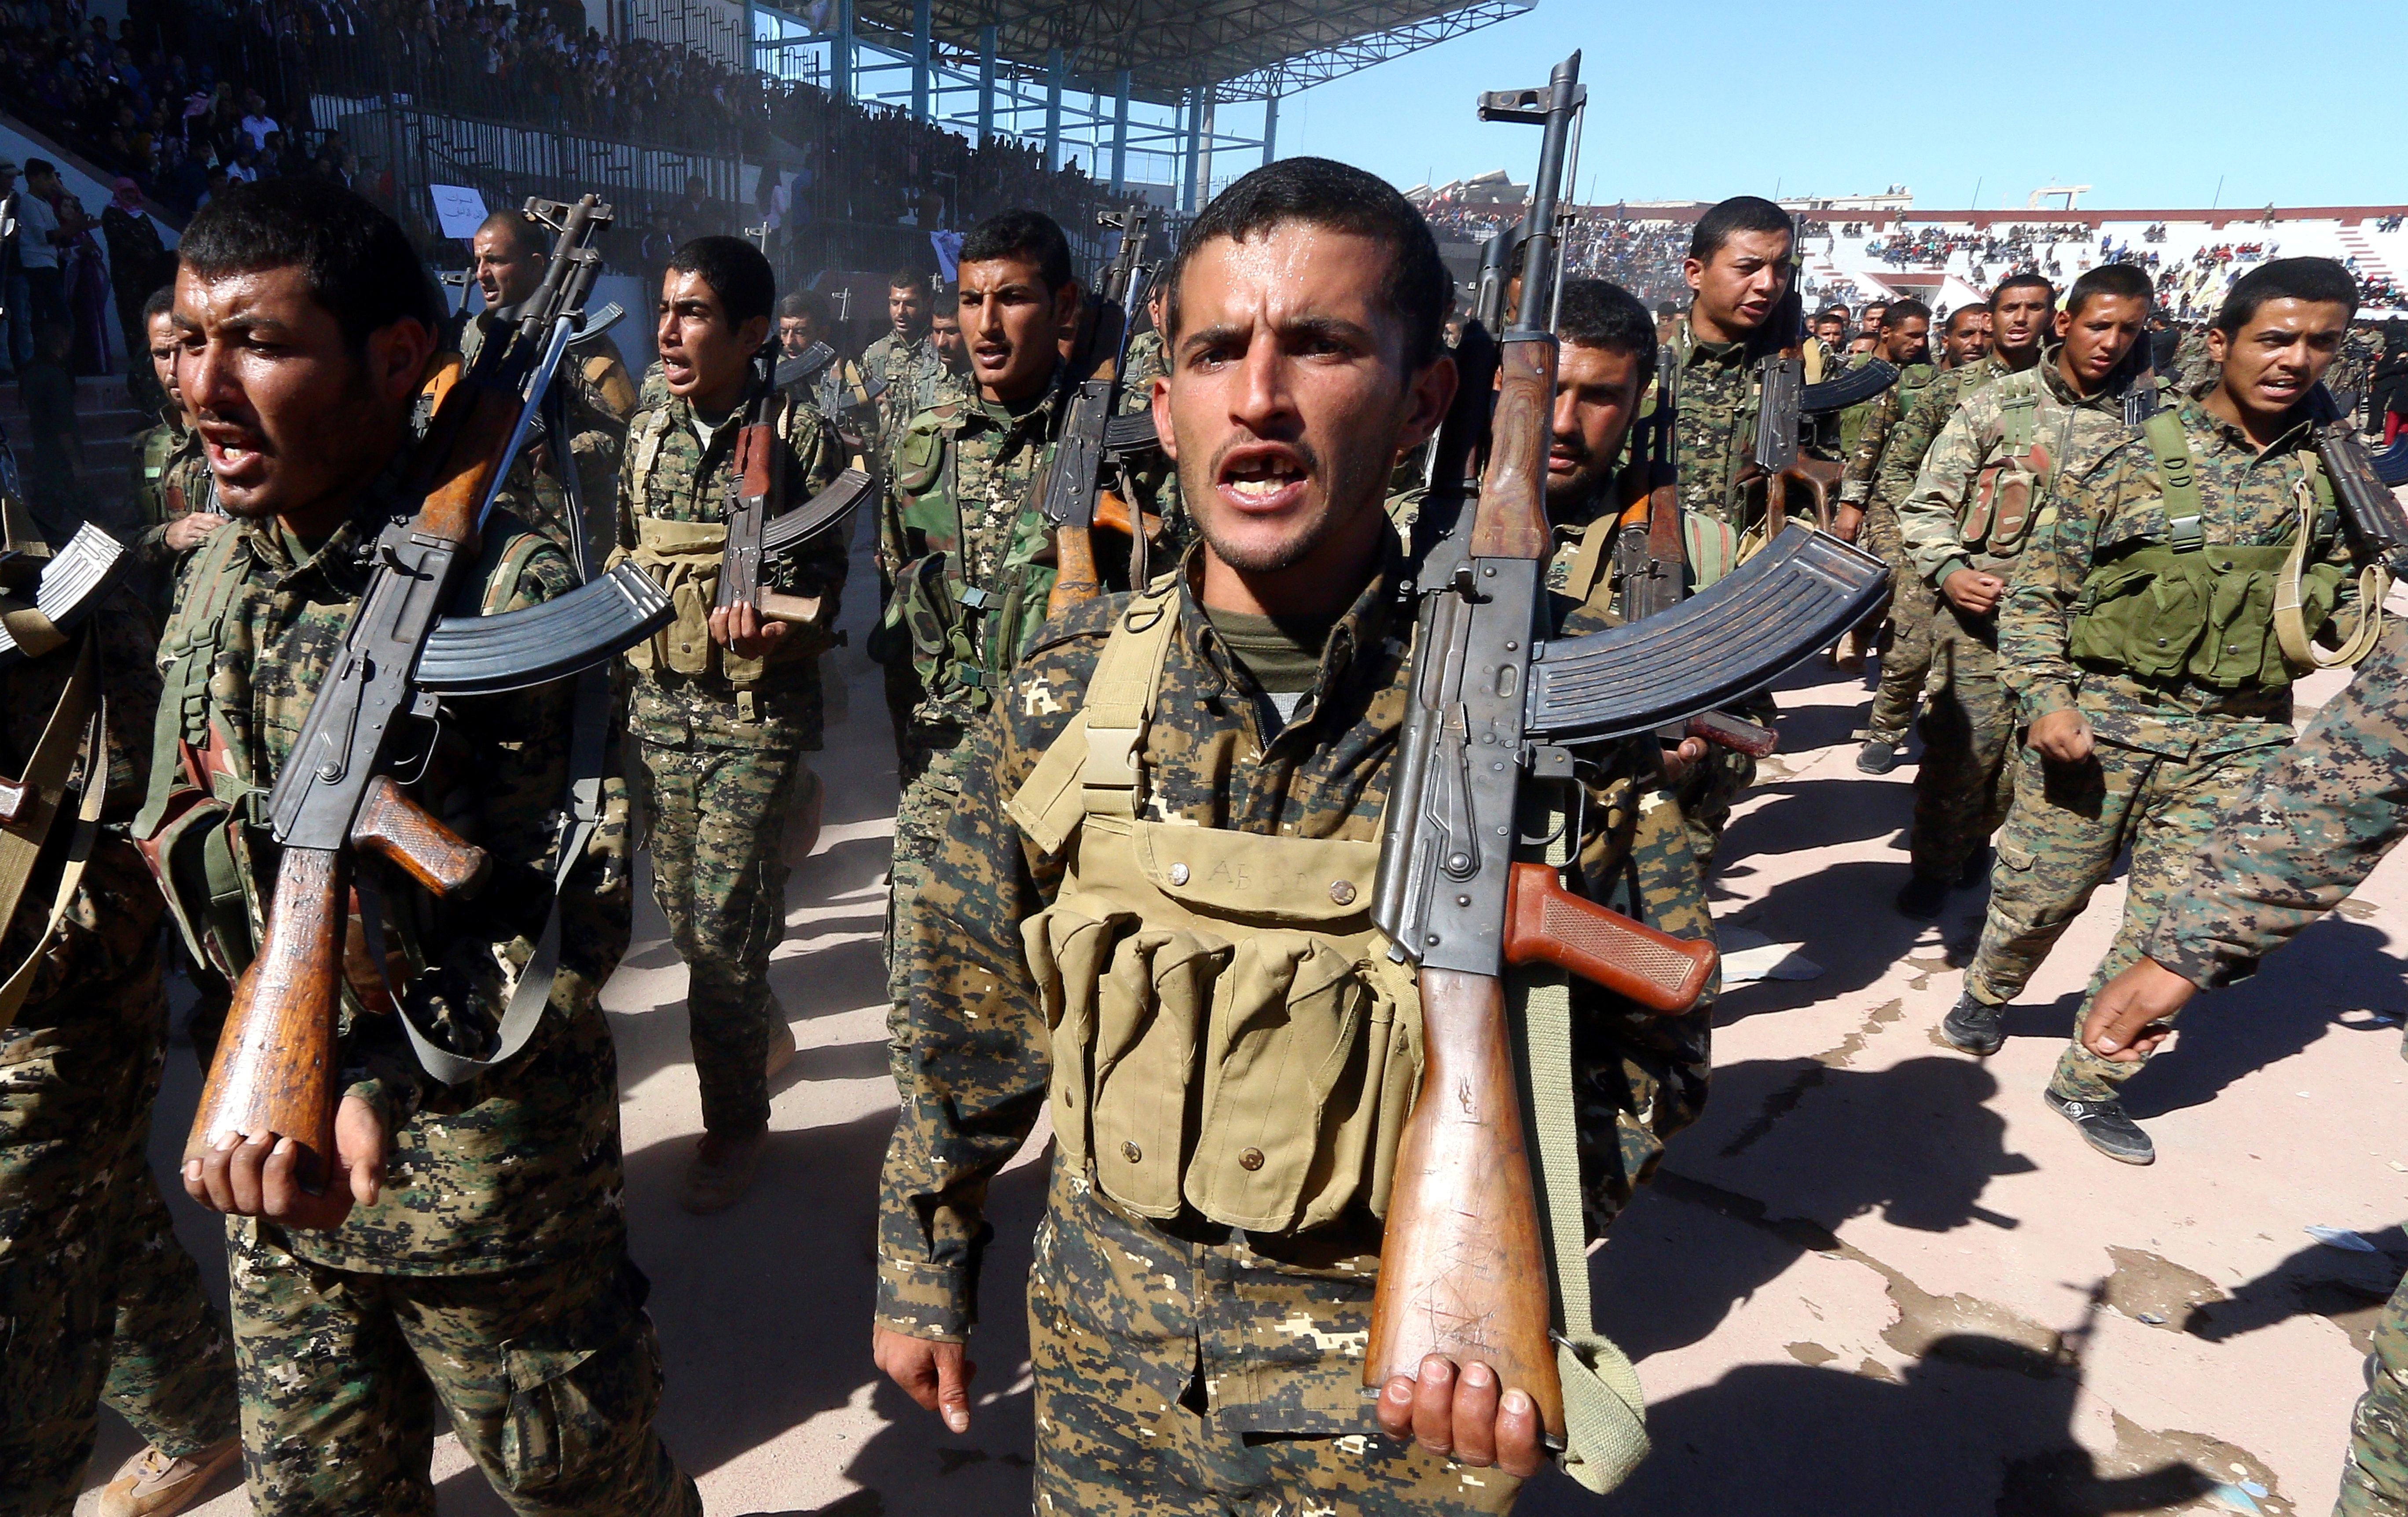 FILE PHOTO: Syrian Democratic Forces (SDF) celebrate the first anniversary of Raqqa province liberation from ISIS, in Raqqa, Syria Ocotber 27, 2018. REUTERS/Aboud Hamam/File Photo